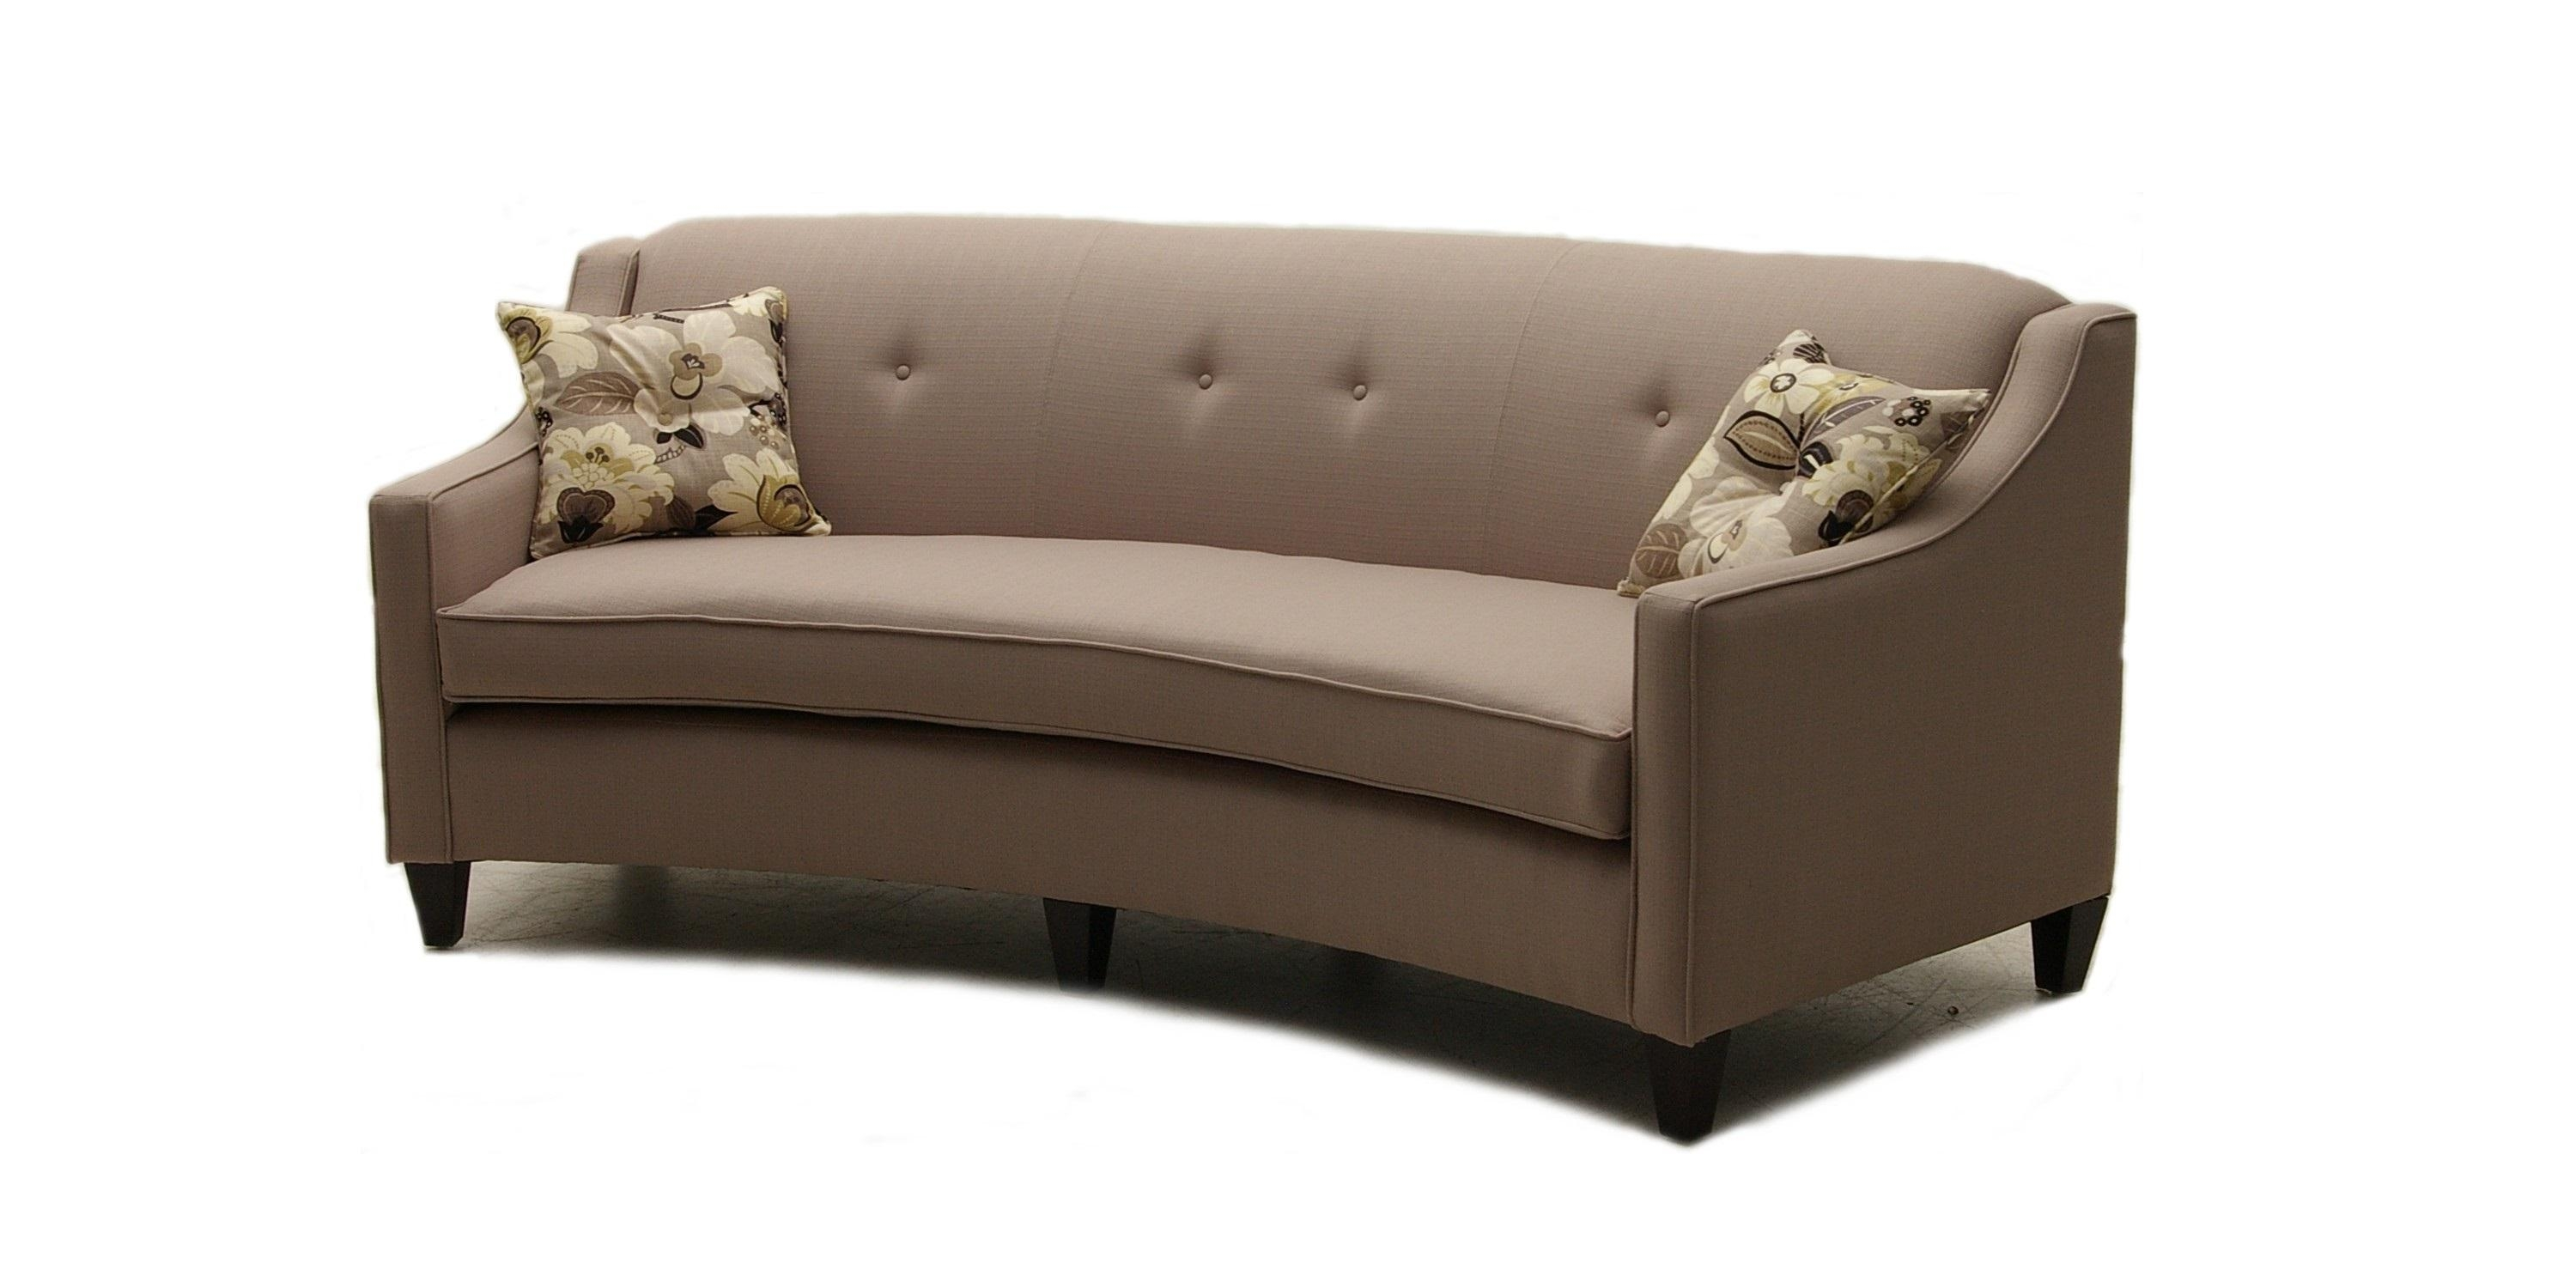 Small Curved Sofa Good Small Curved Sofa 74 About Remodel